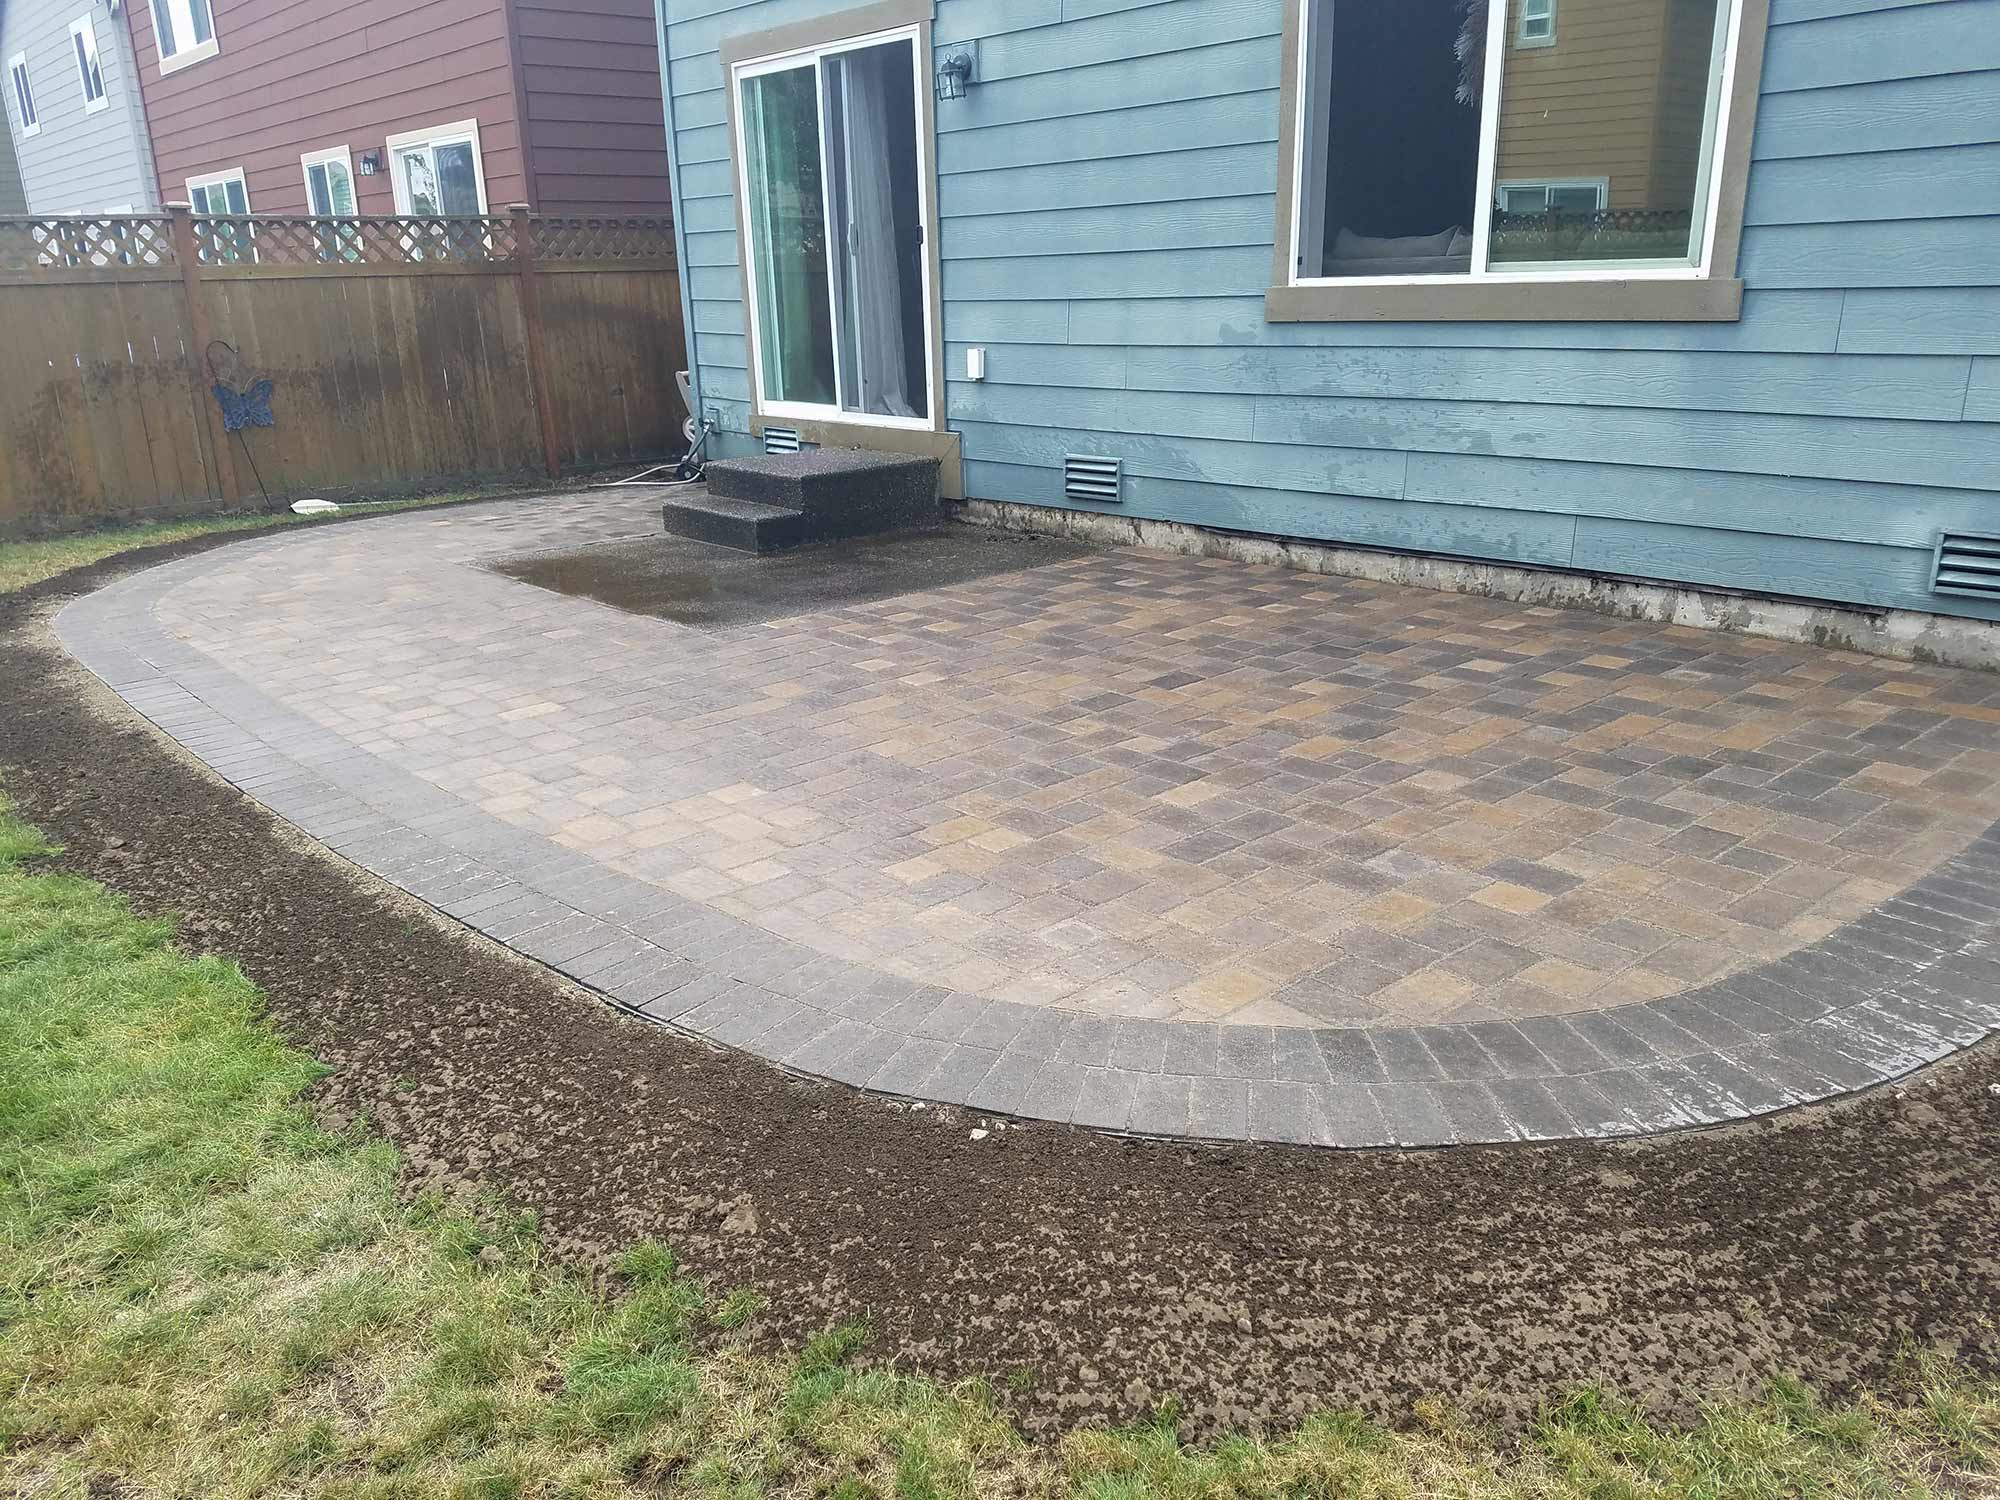 Paver Patio With Double Border Paver Patio With Double Border ...